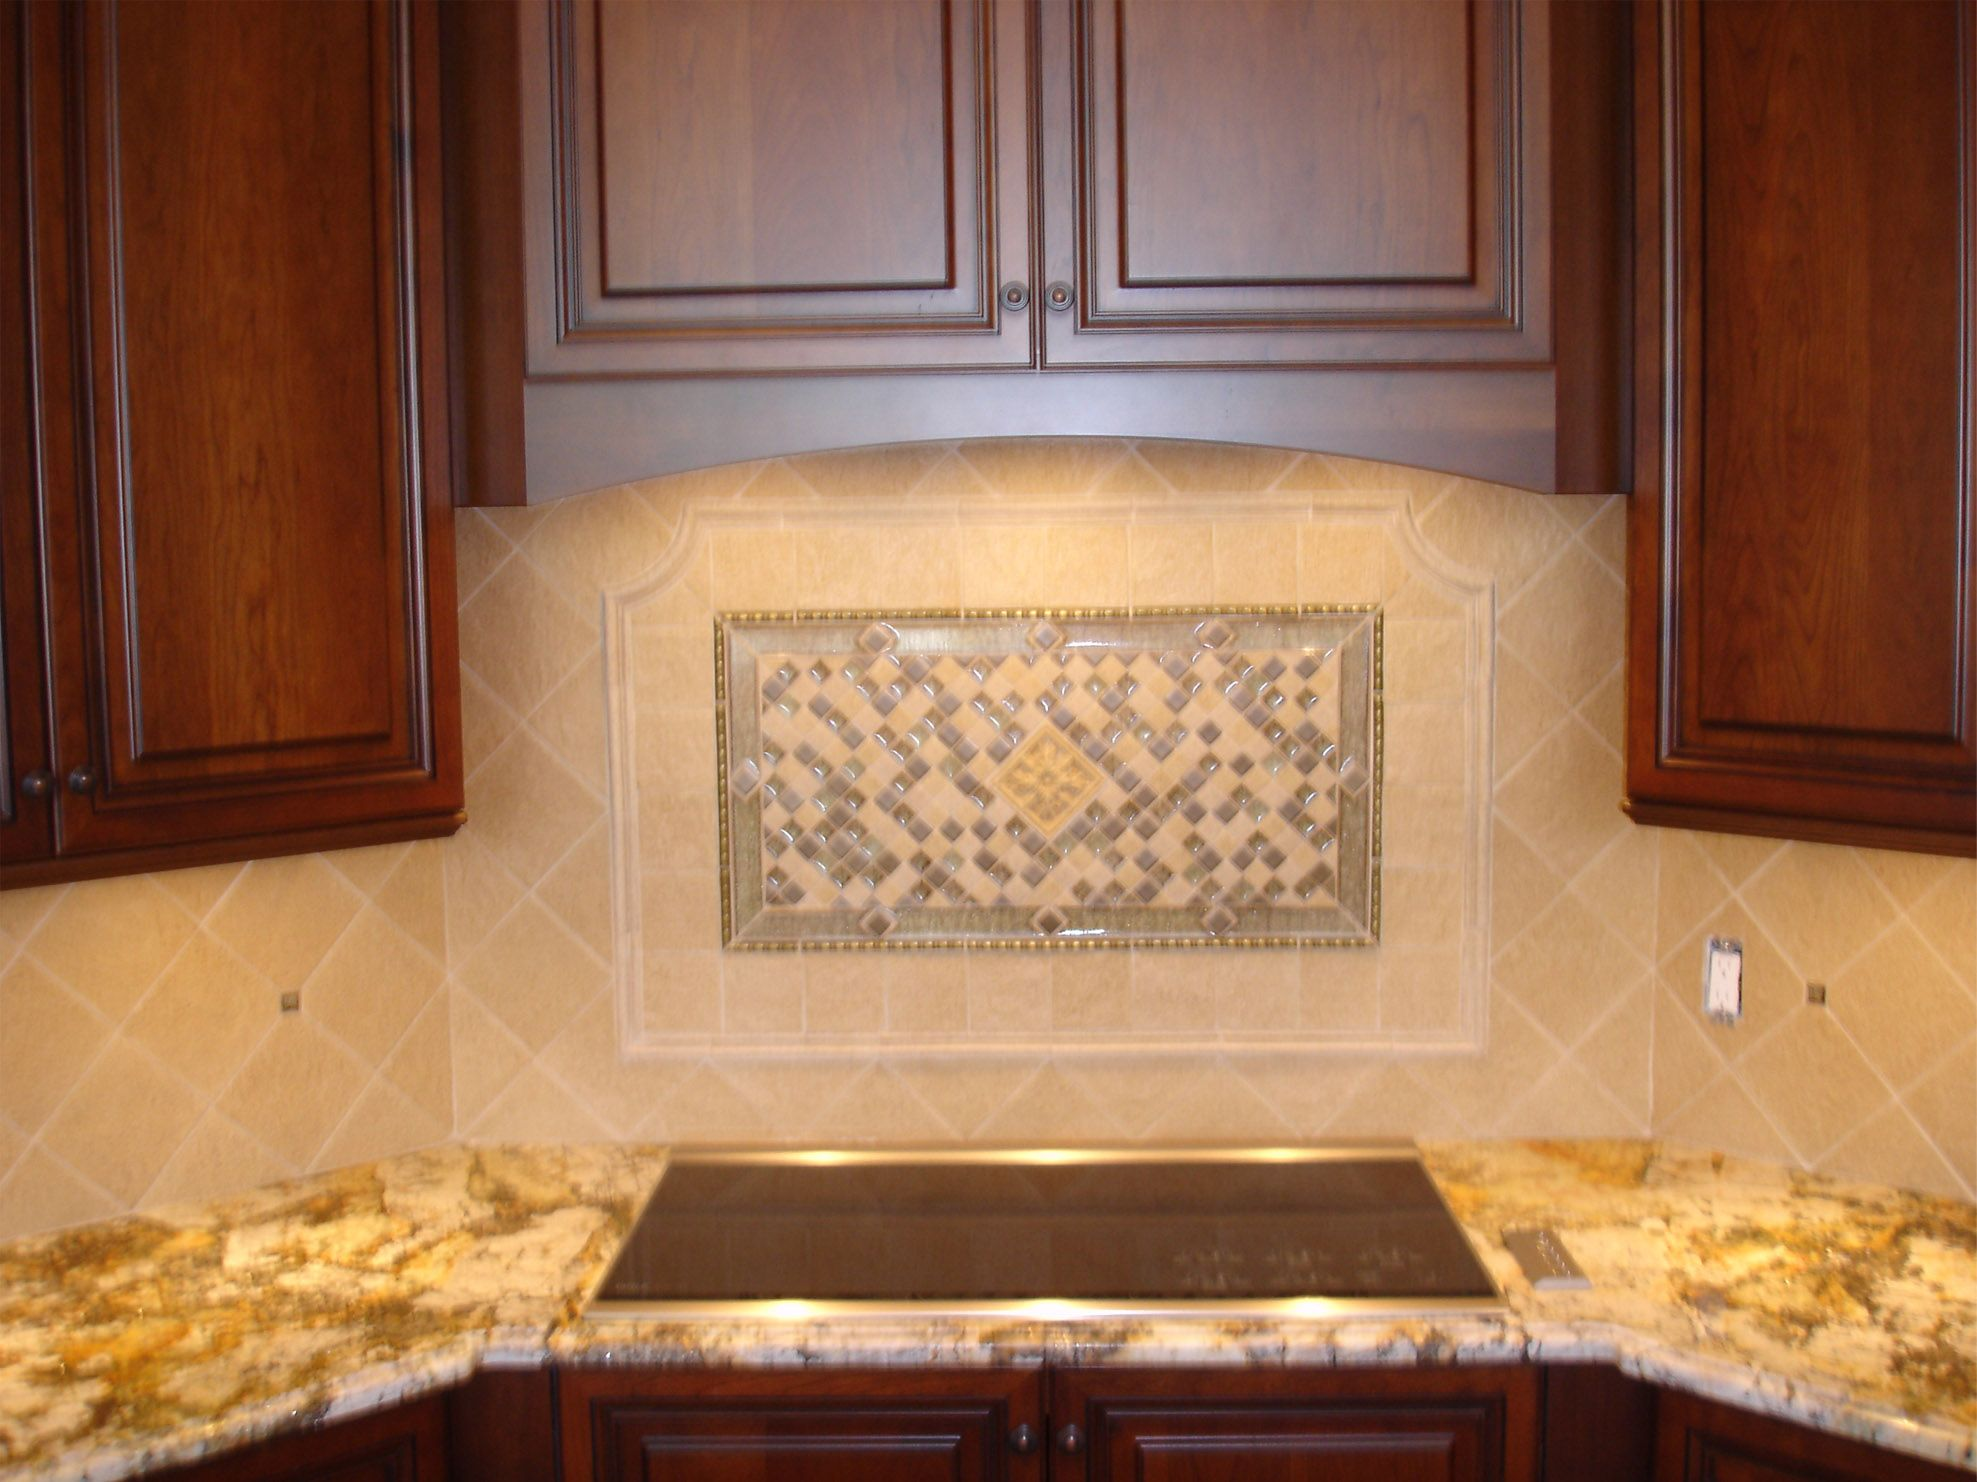 Hand Crafted Porcelain and Glass Backsplash Tile Design Kitchen. Backsplash Ideas For Kitchen With White Cabinets. Picture Of Kitchen Travertine Backsplash with White Cabinets And. Smoke Glass Subway Tile Kitchen Ideas Kitchen and Kitchen Remodel